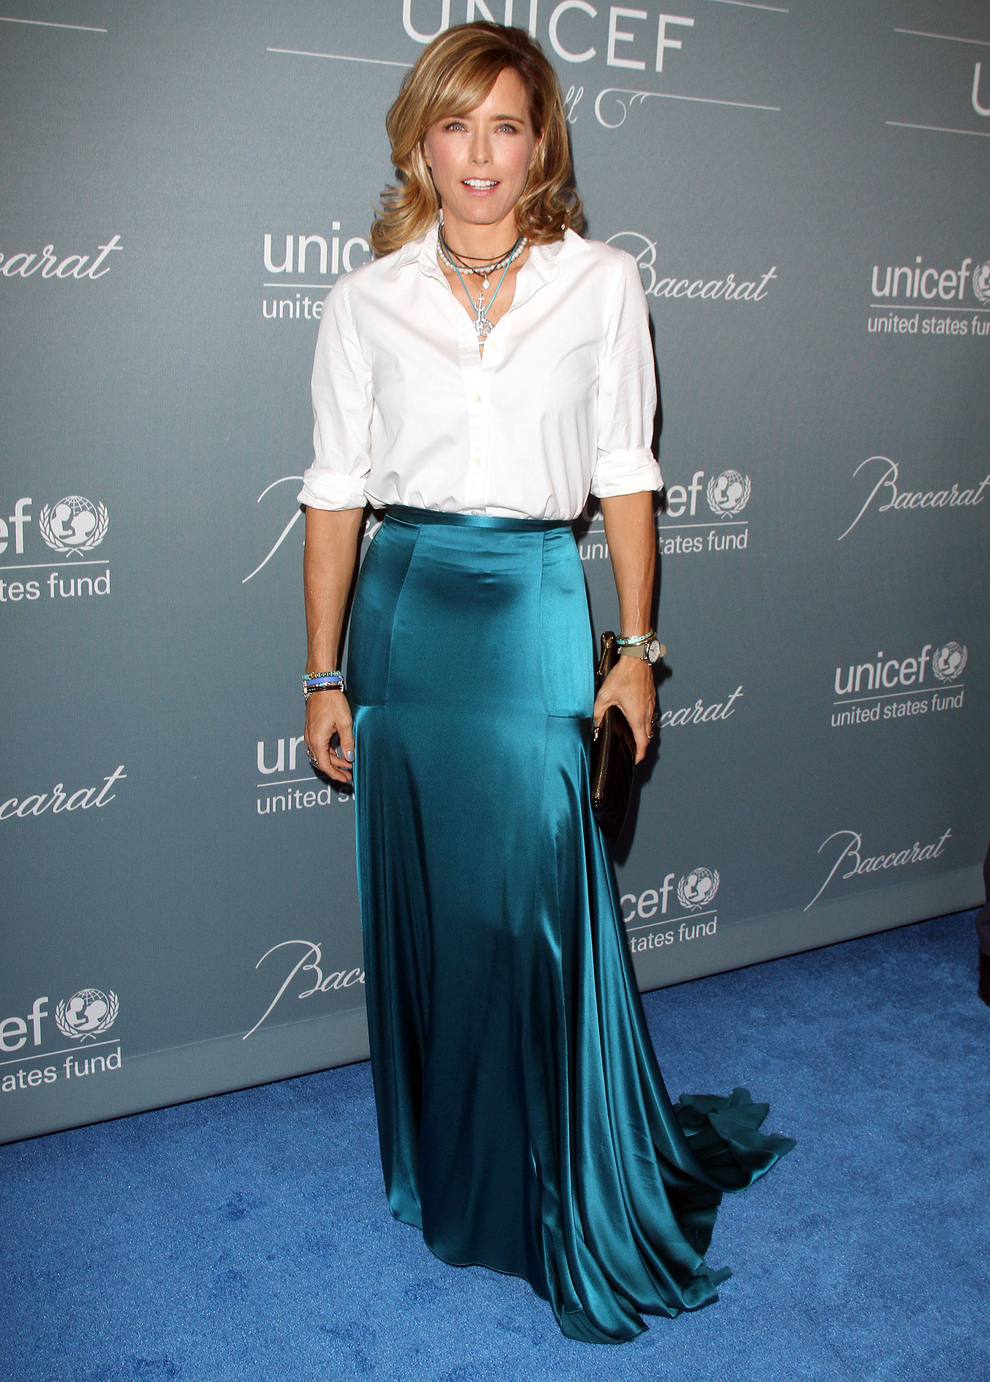 Tea Leoni At The 2014 UNICEF Ball Held In Beverly Hills